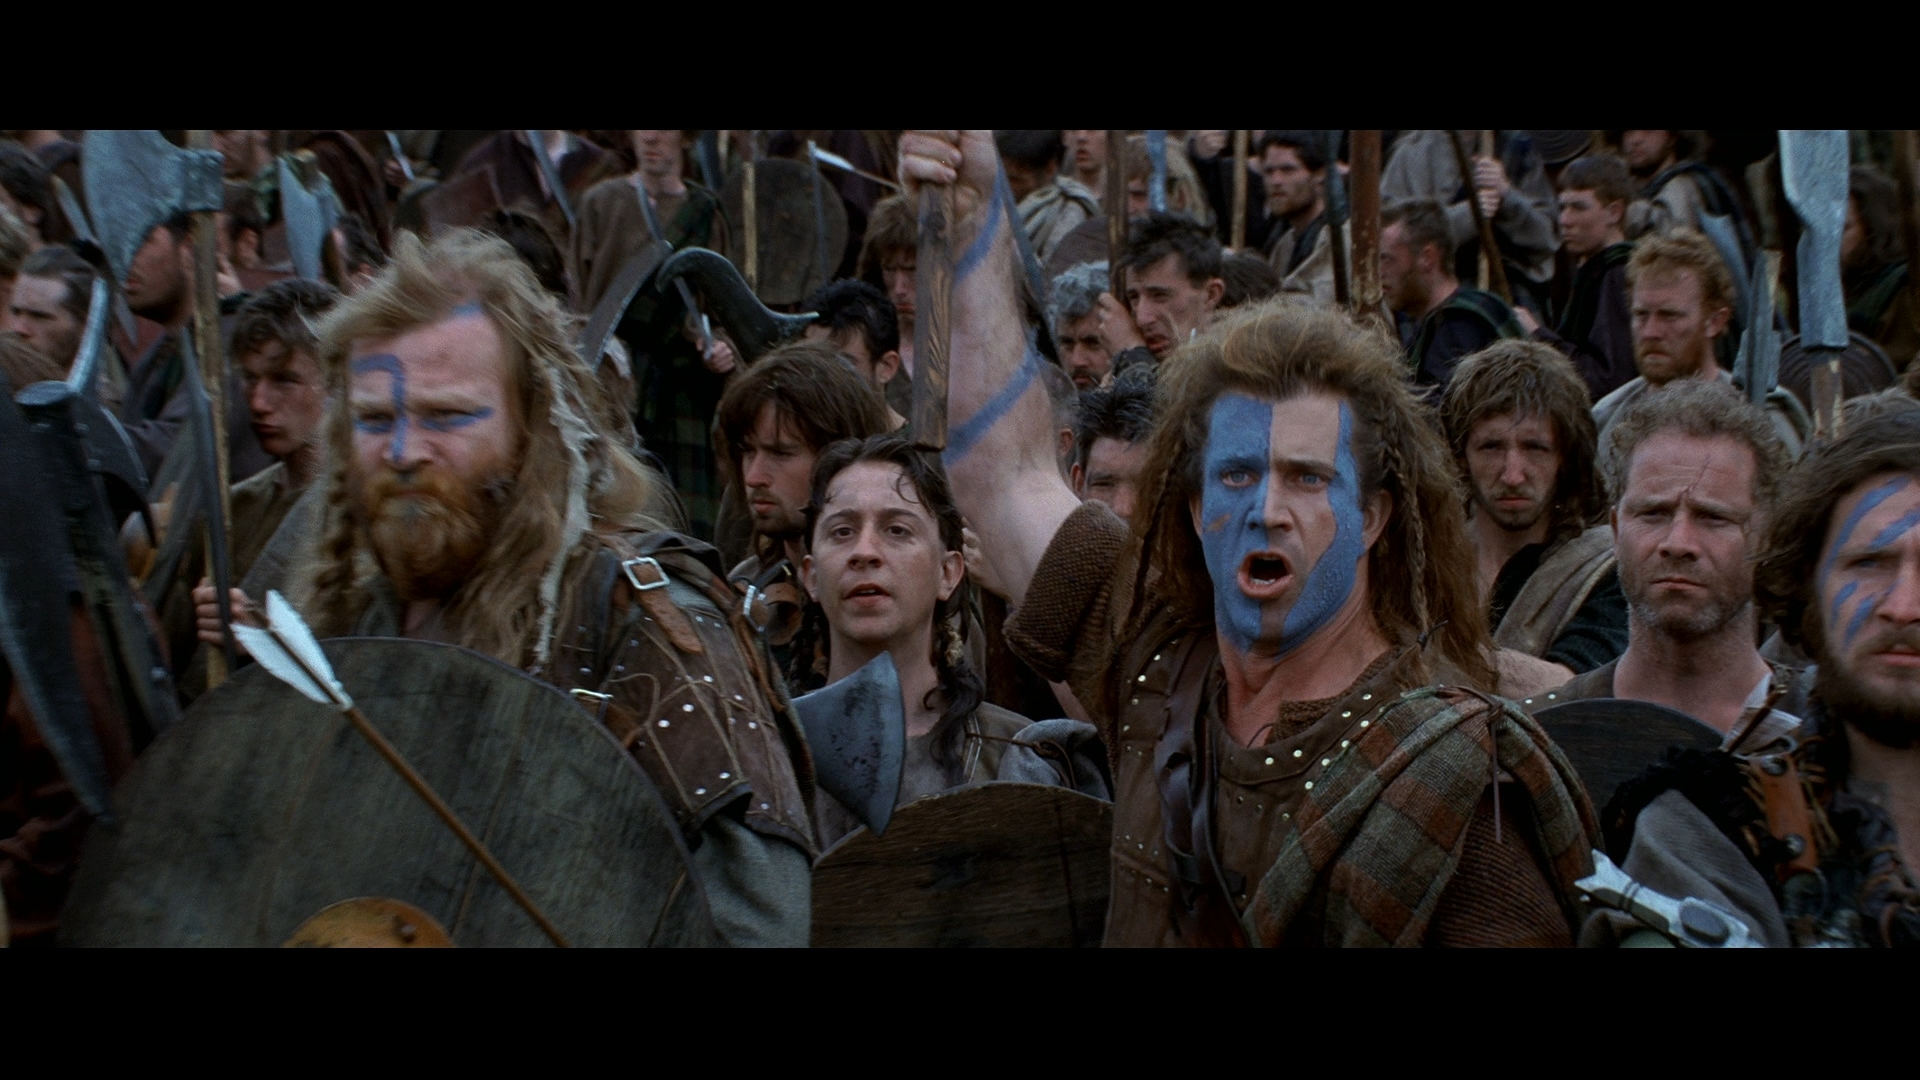 Braveheart (1995): Movie Summary & Review